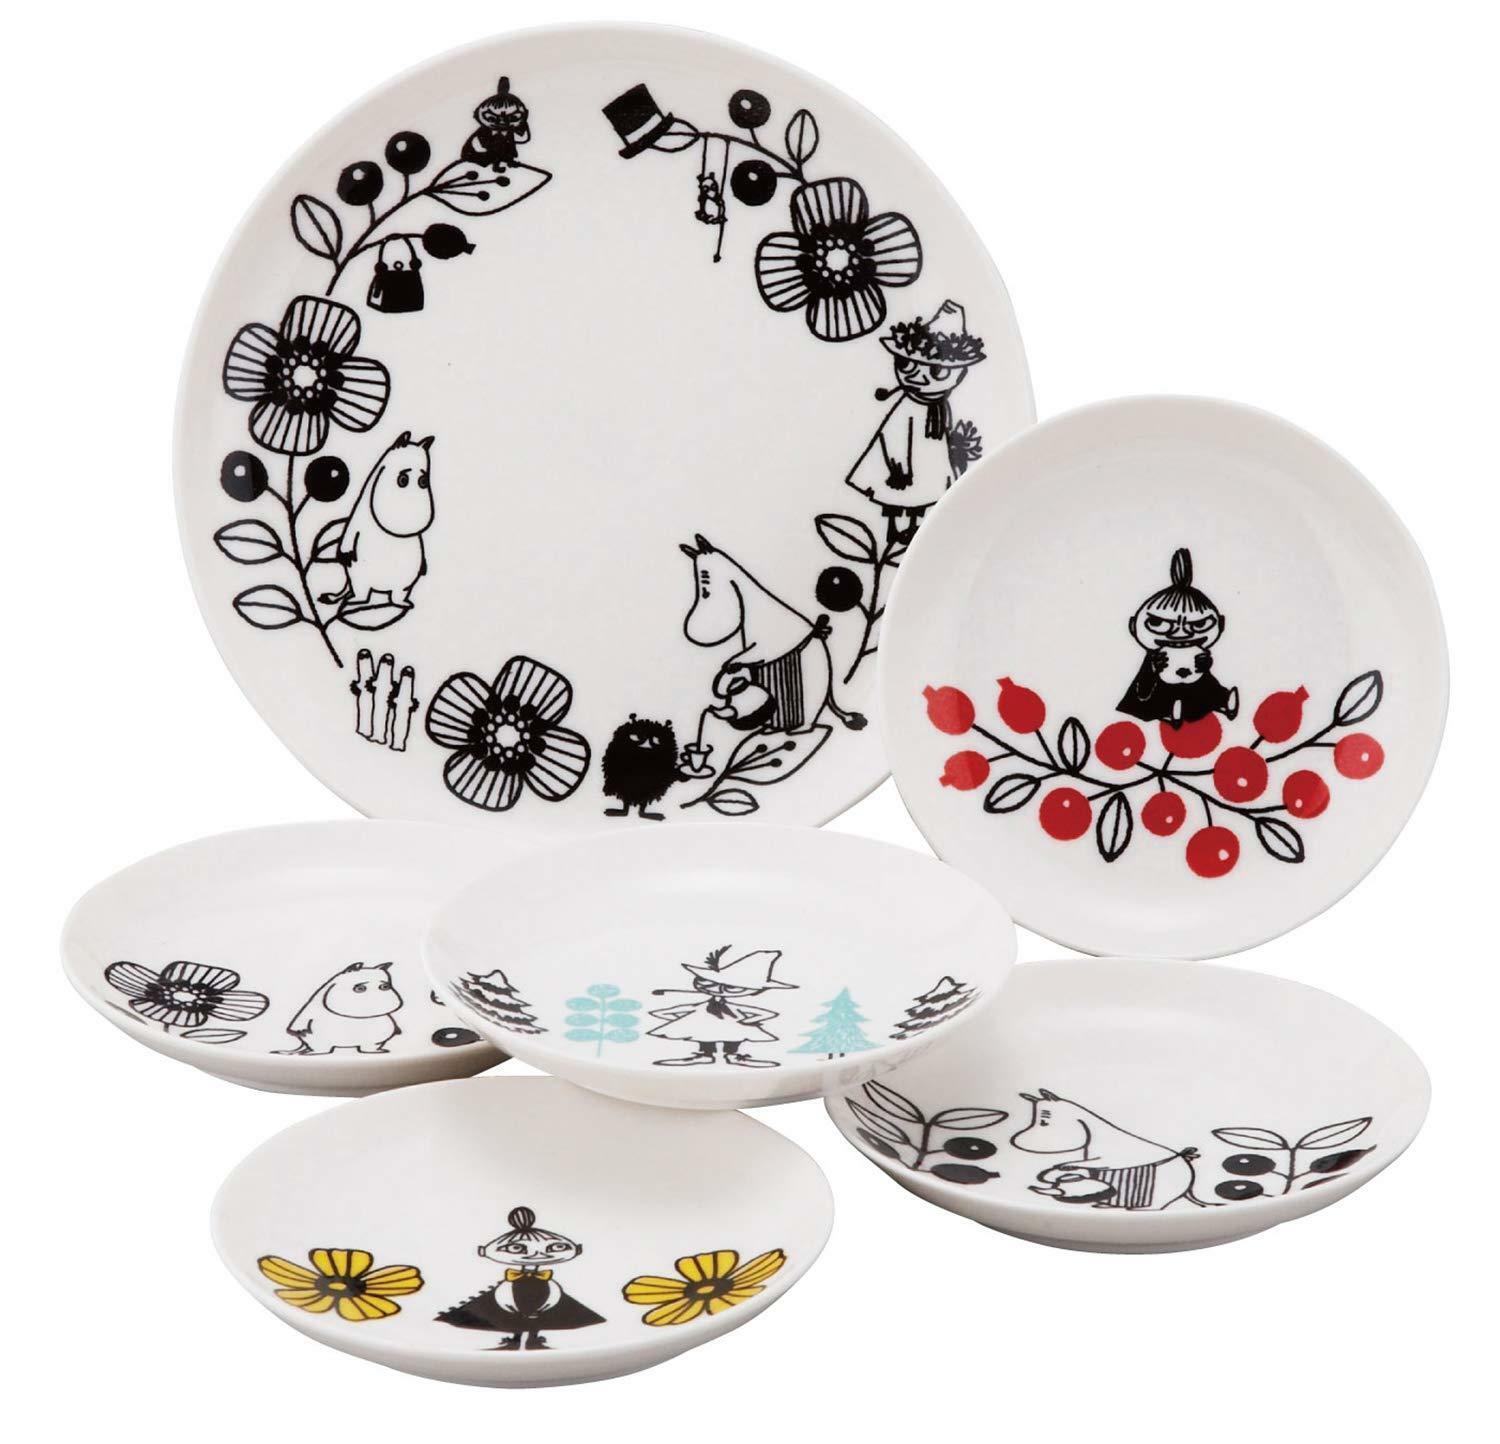 Moomin Valley Berry Set Plate 6 Pieces MM1400-52 215mm 140mm Yamaka from Japan